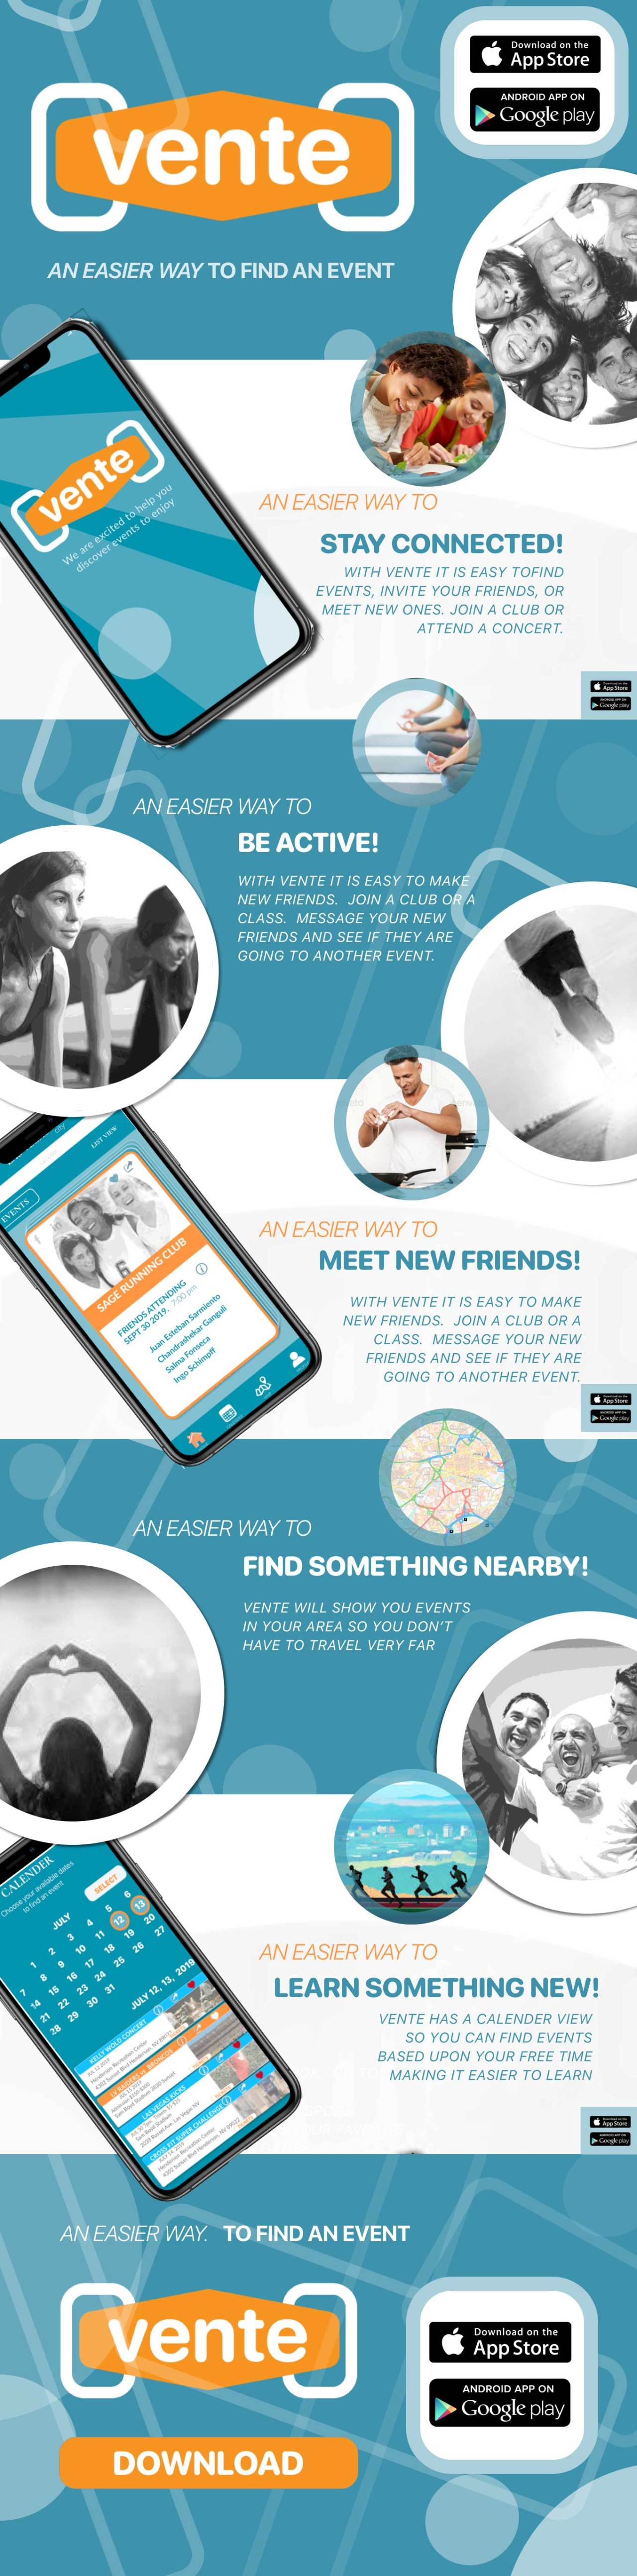 Marketing Screen for Vente App: Stay Connected Be Active Meet New Friends Find Something Nearby Learn Something New